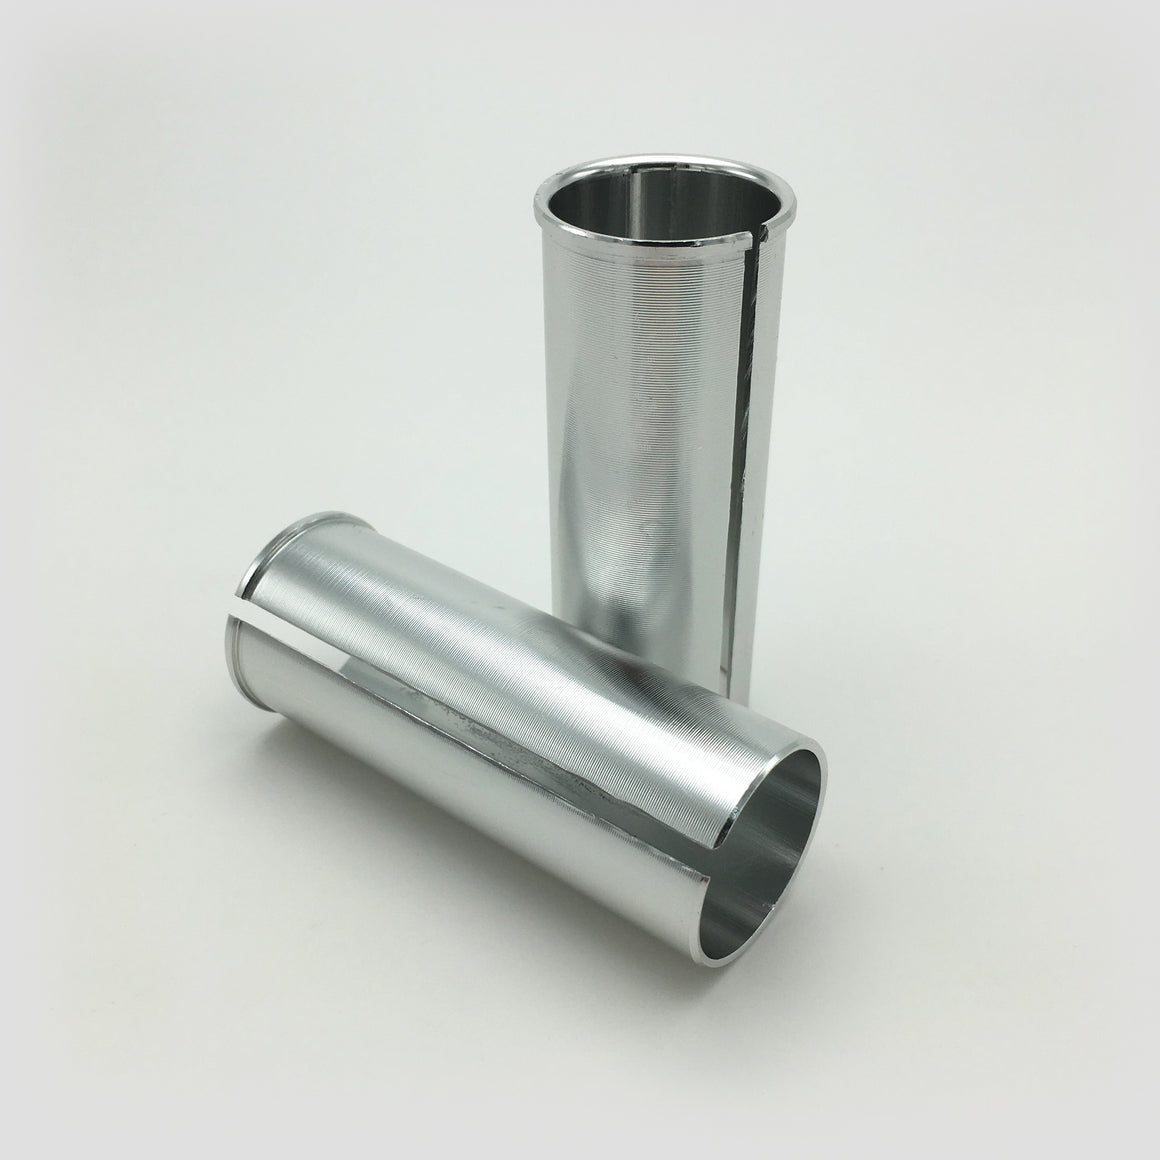 Aluminum reduction sleeve for 31.7 dia. seat tubes